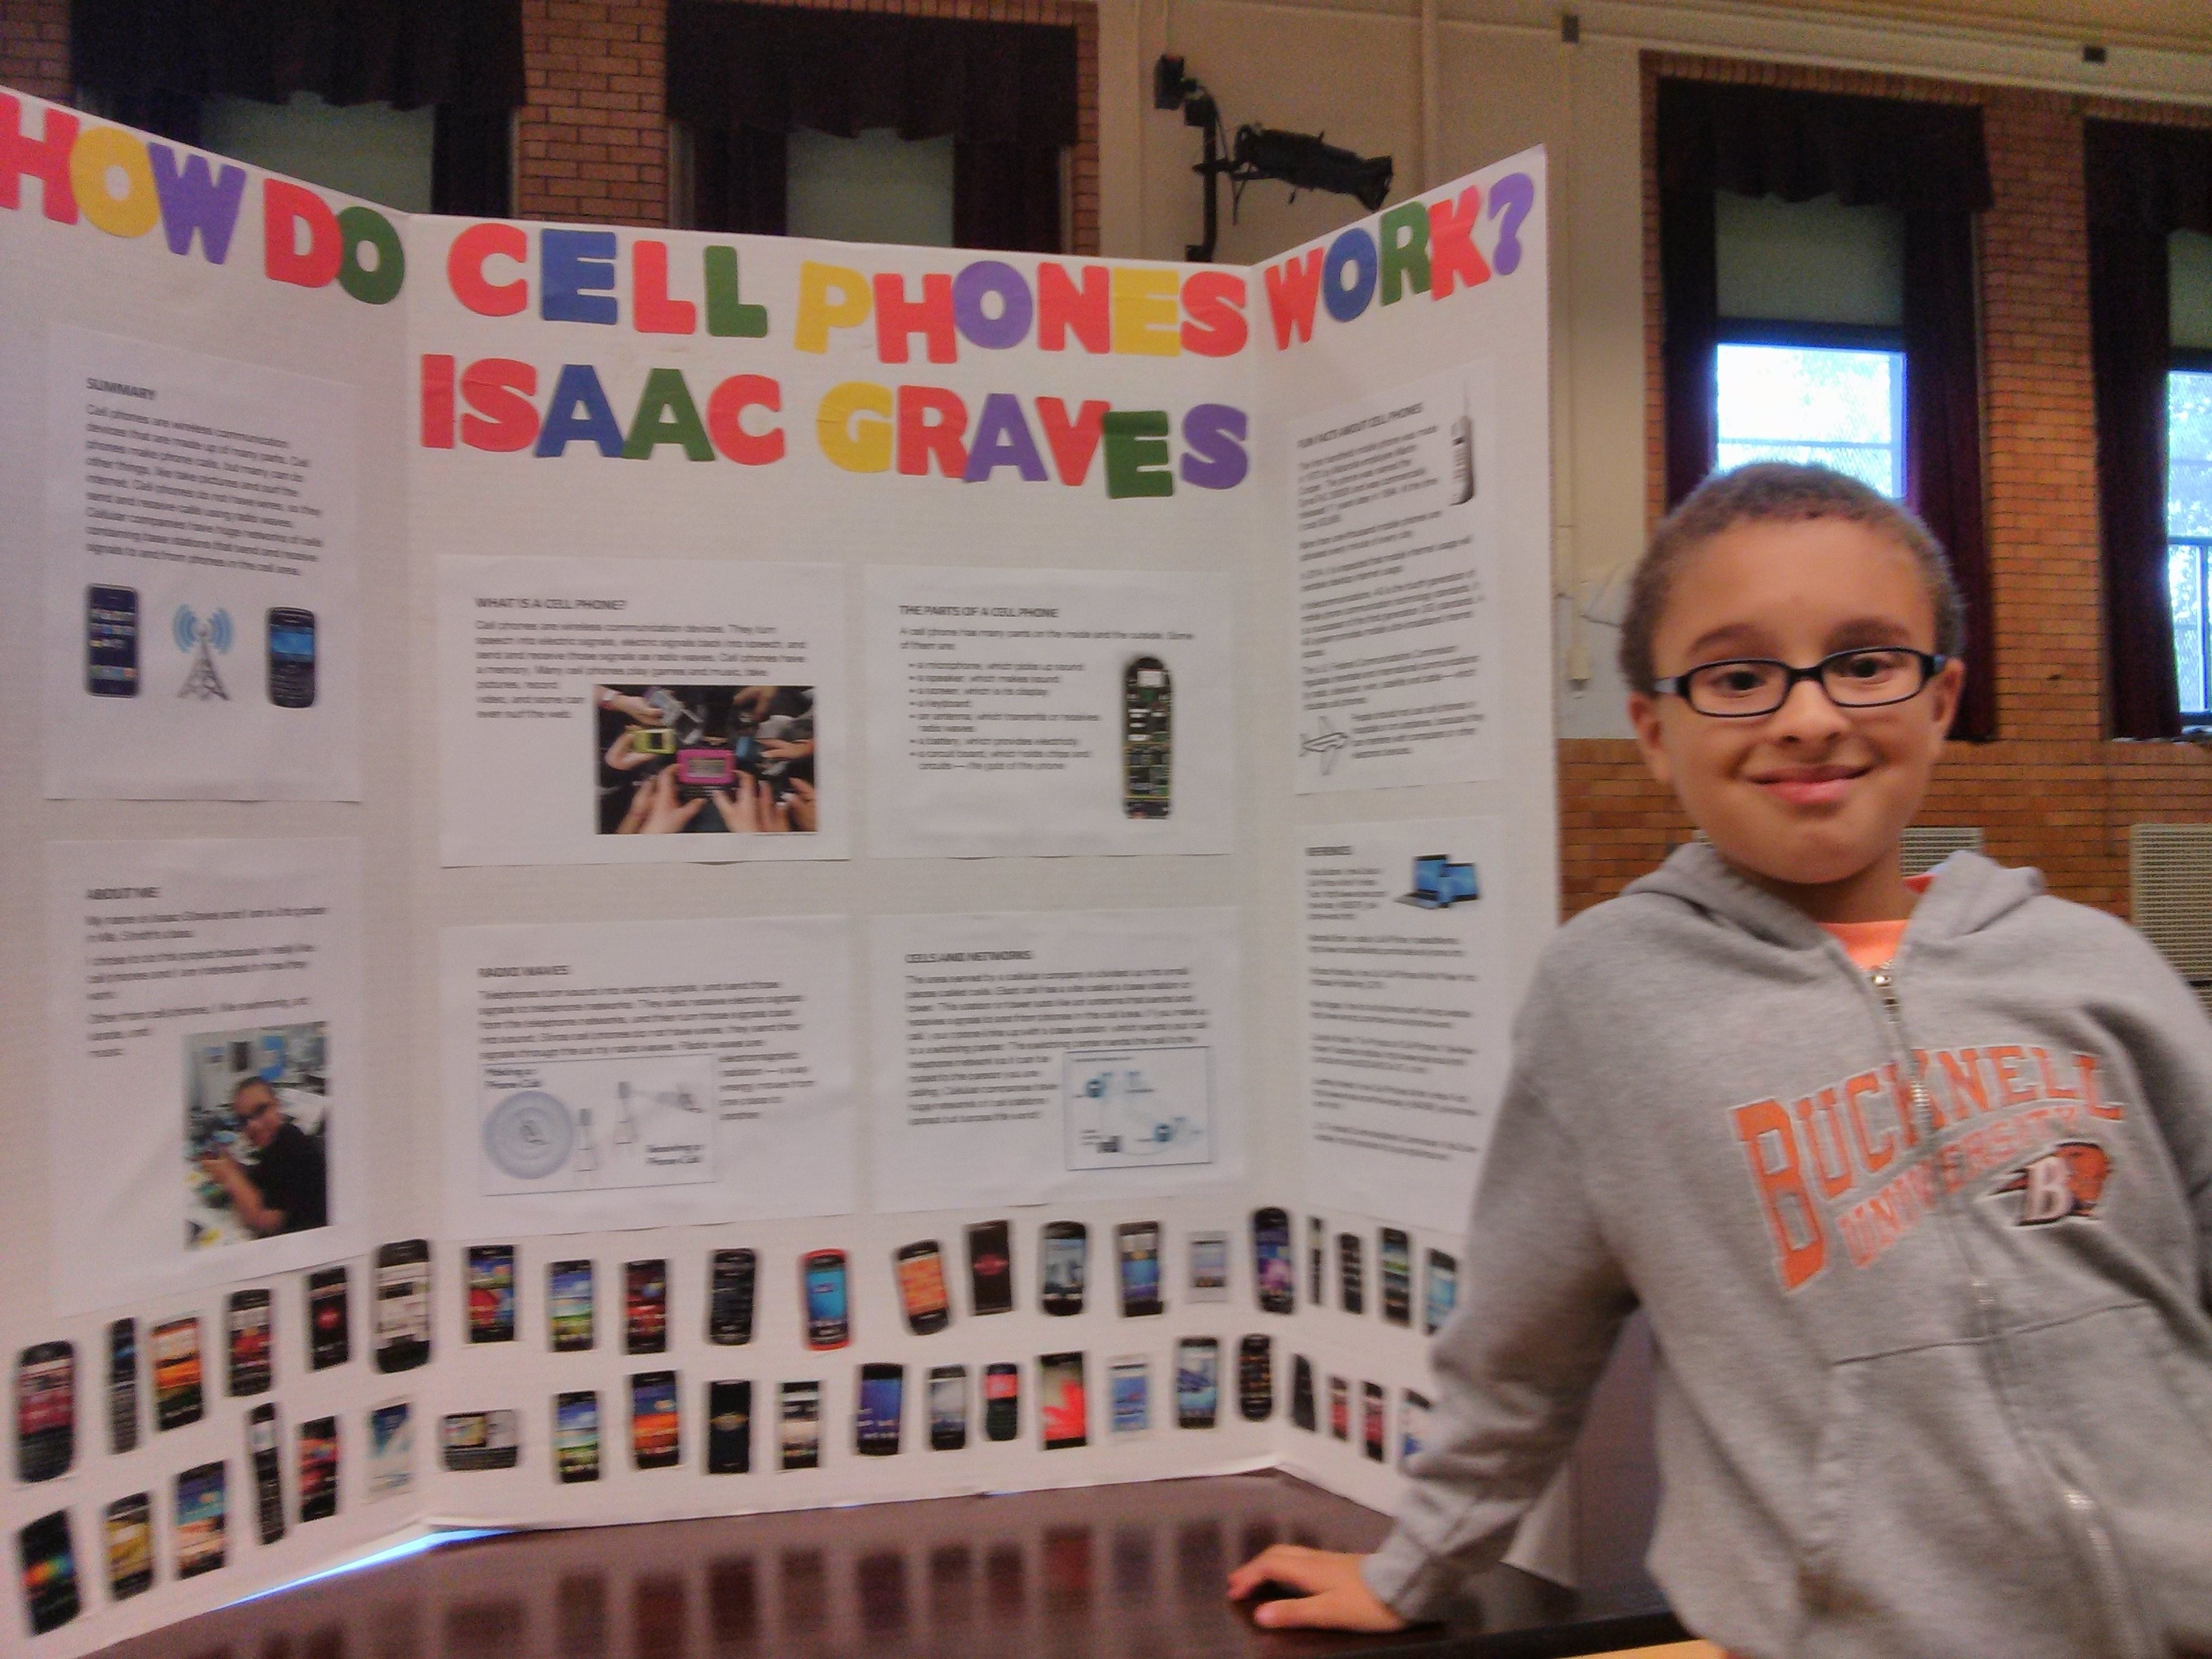 10 Nice Science Fair Ideas For 3Rd Graders third grade science projects research paper academic service 4